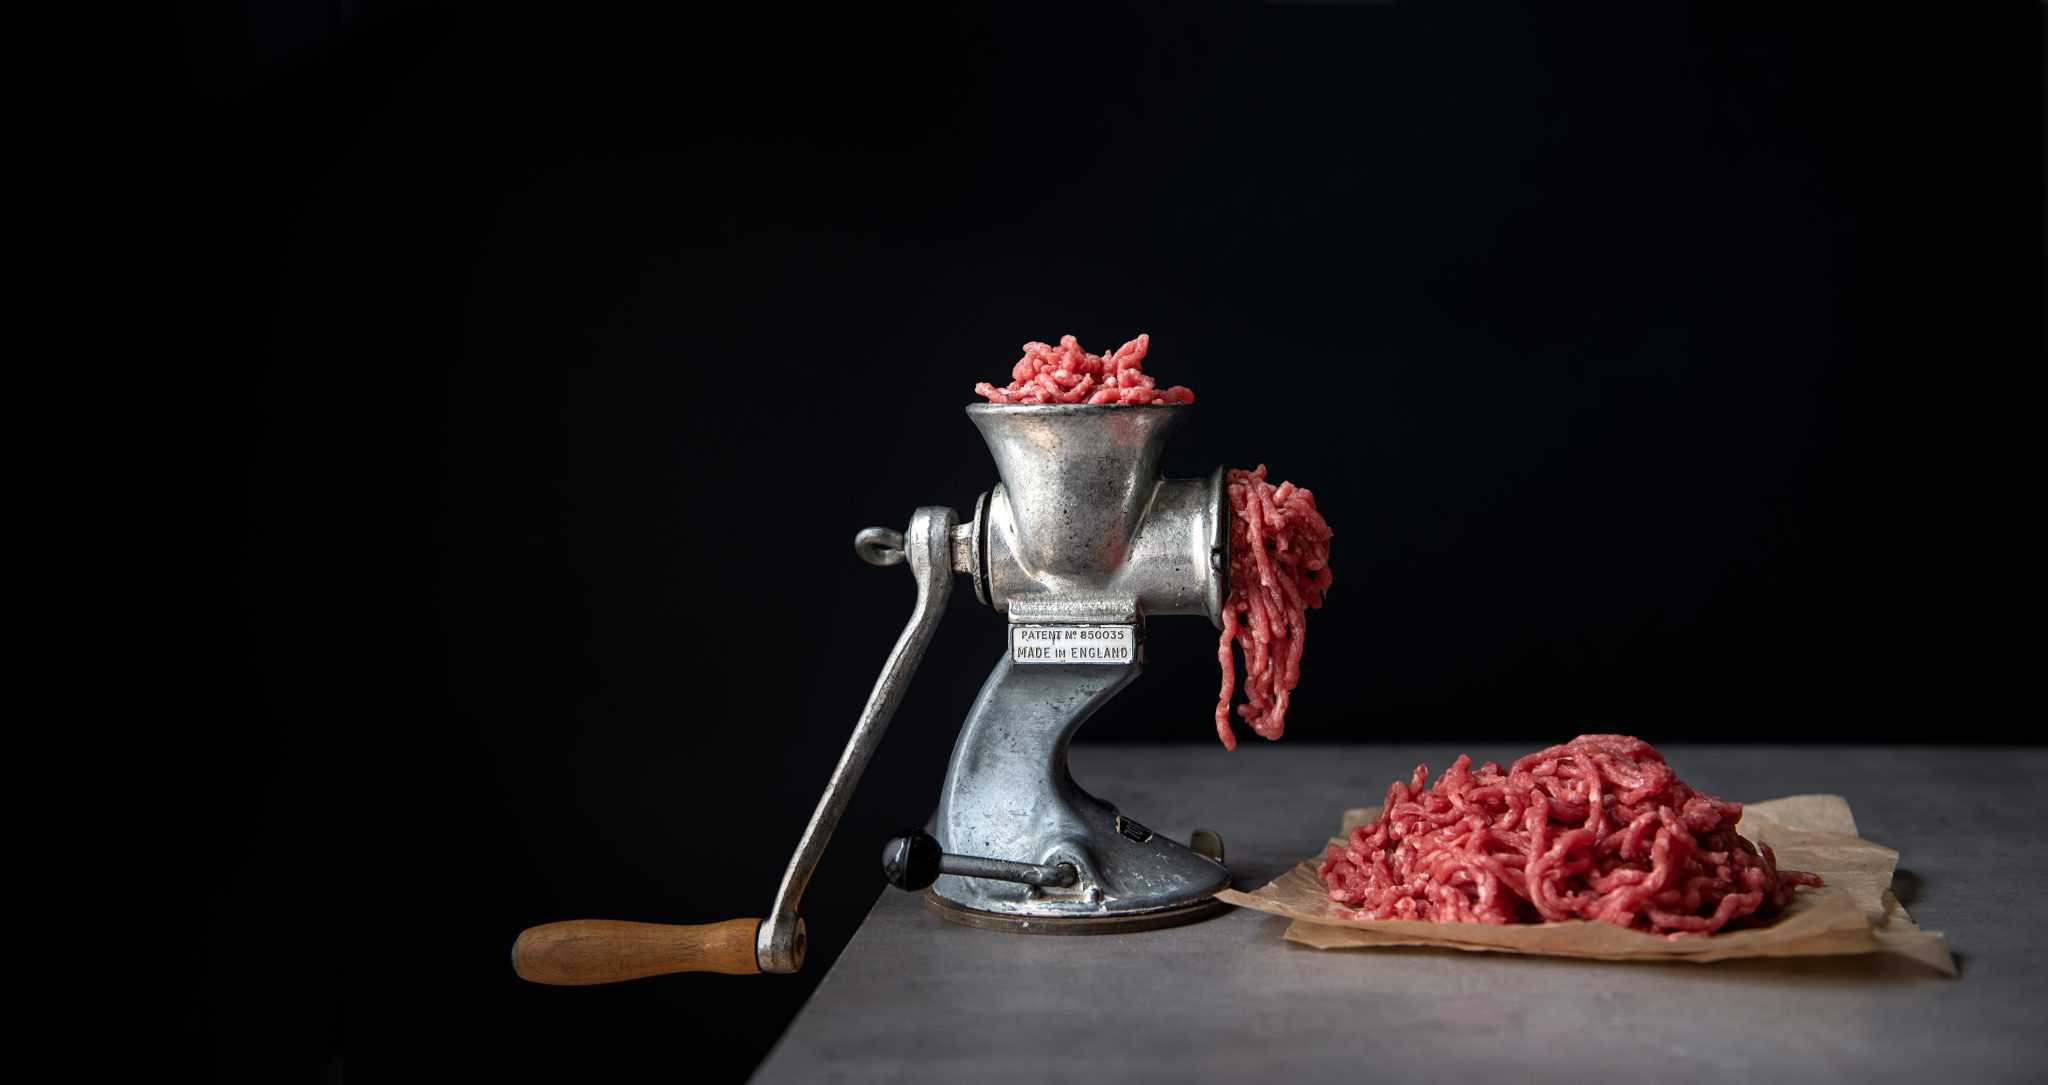 Farmison & Co chefs' choice grass fed heritage breed beef mince (1) food standards